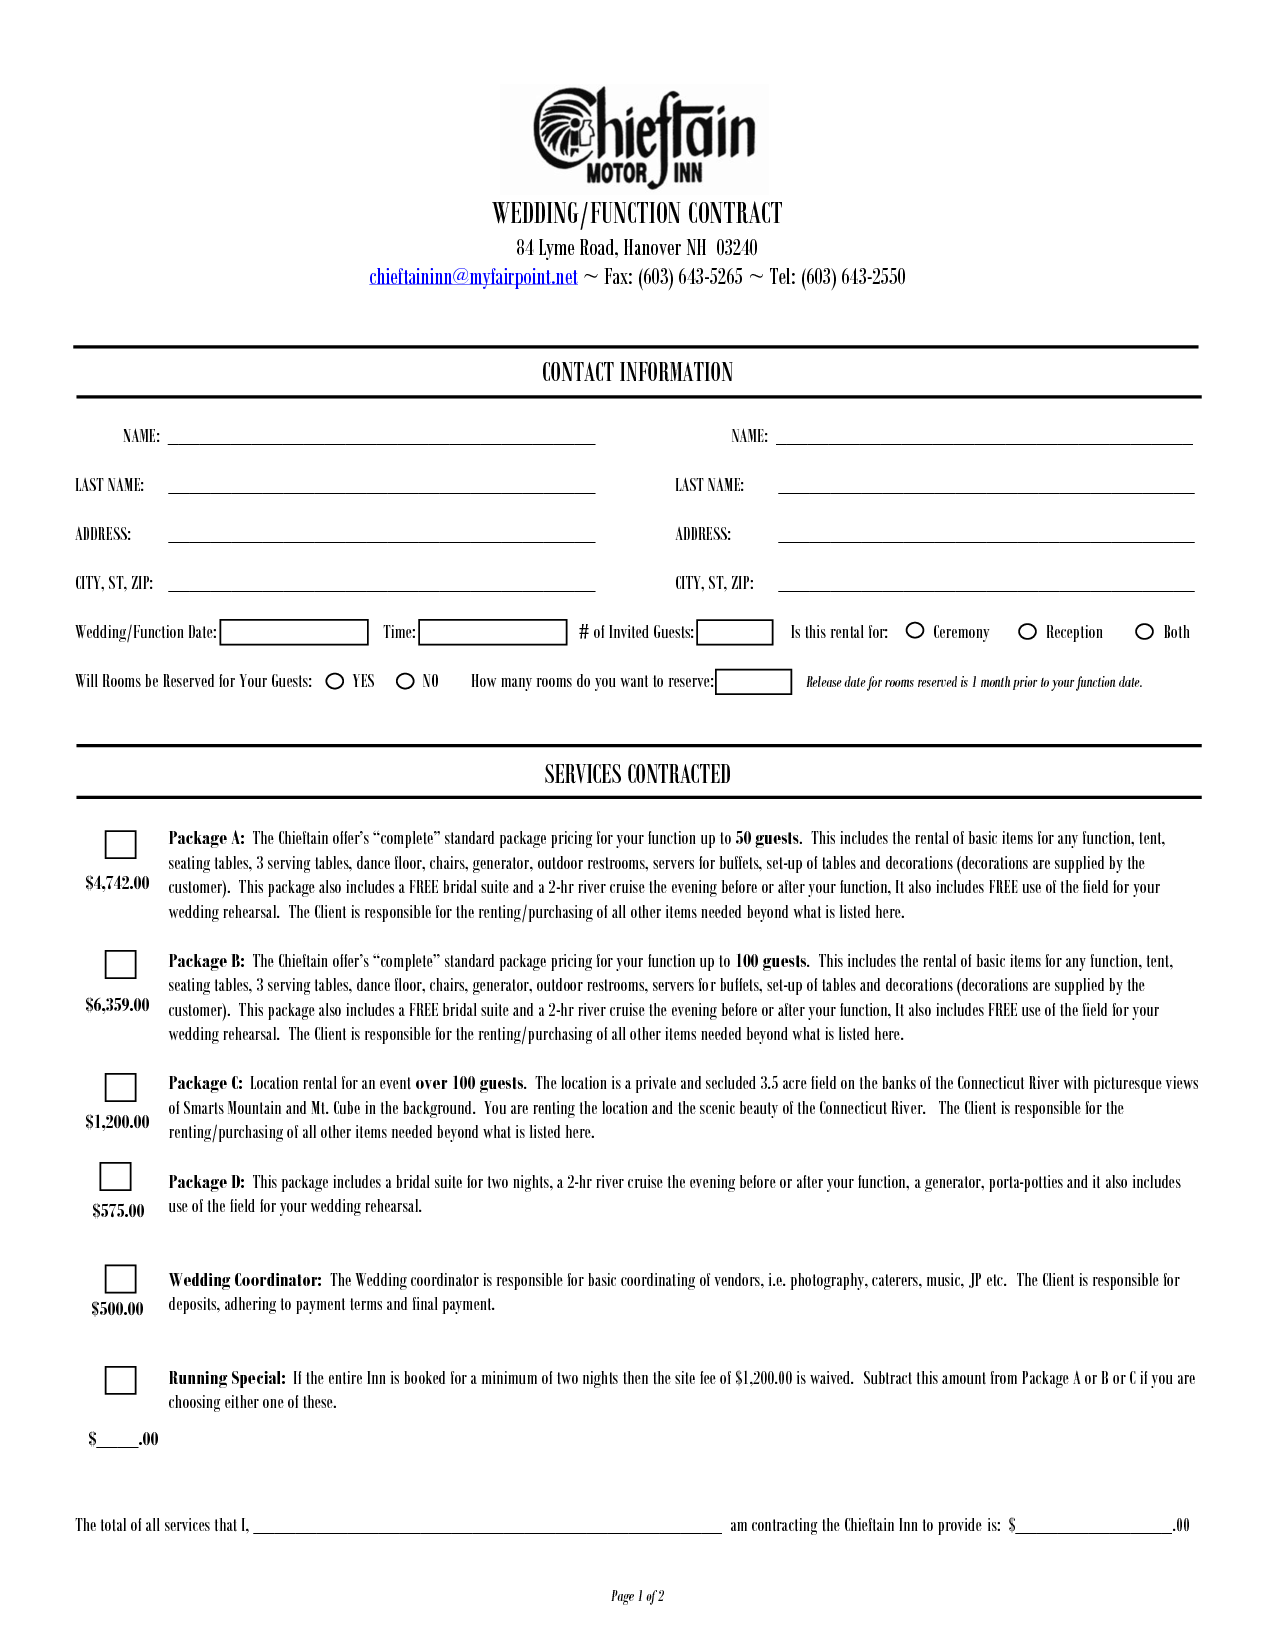 wedding contract for wedding planner Google Search project 2